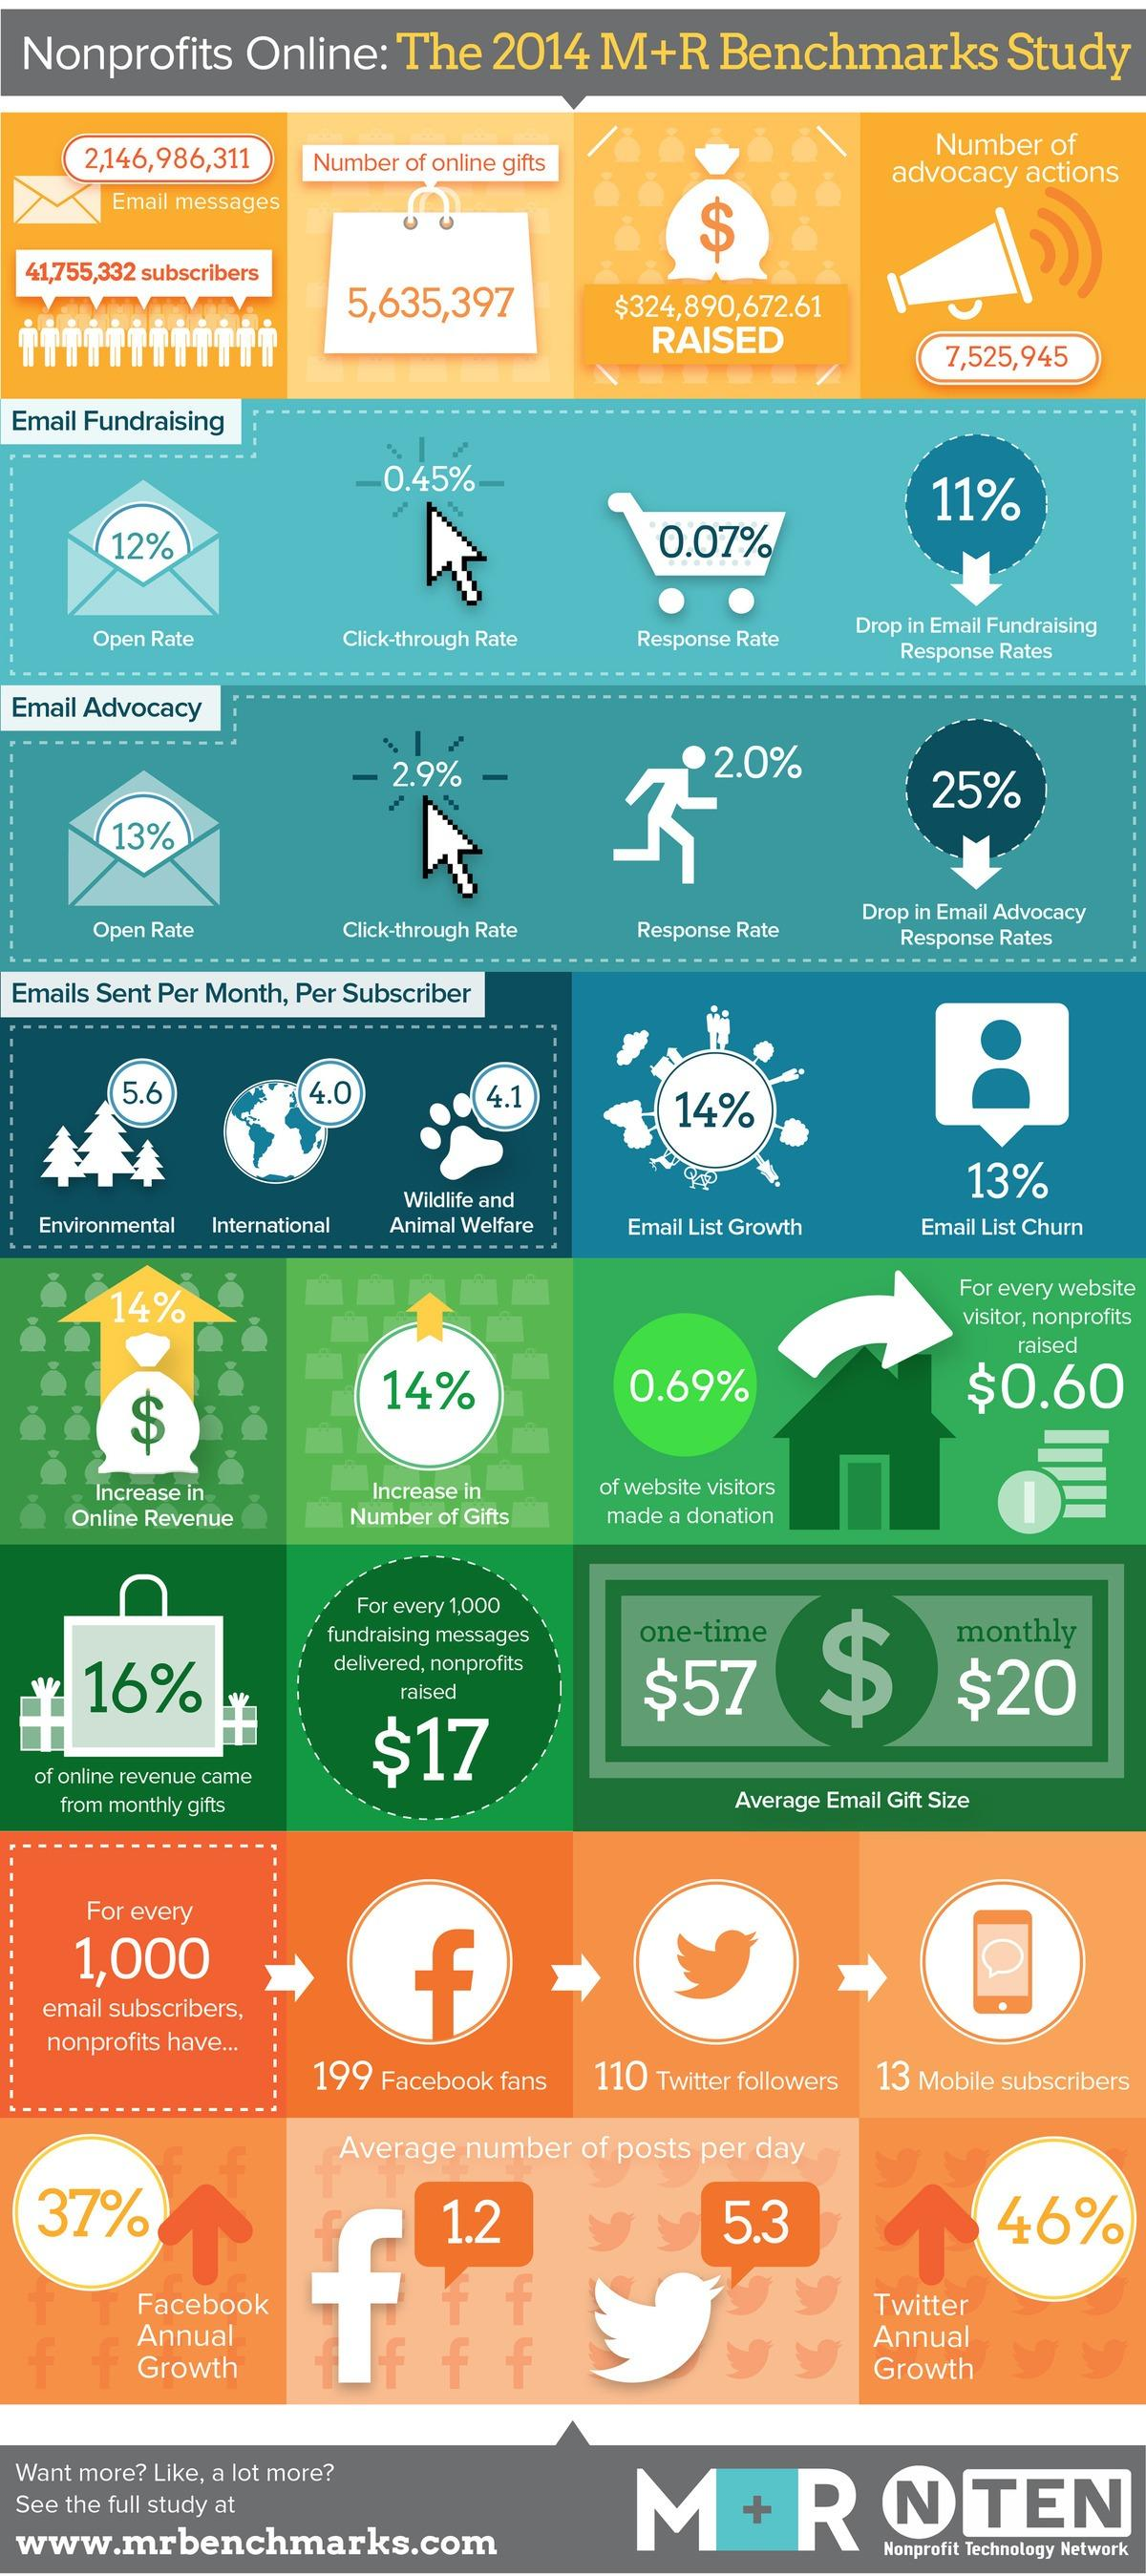 Nonprofits Online - The 2014 M+R Benchmarks Study